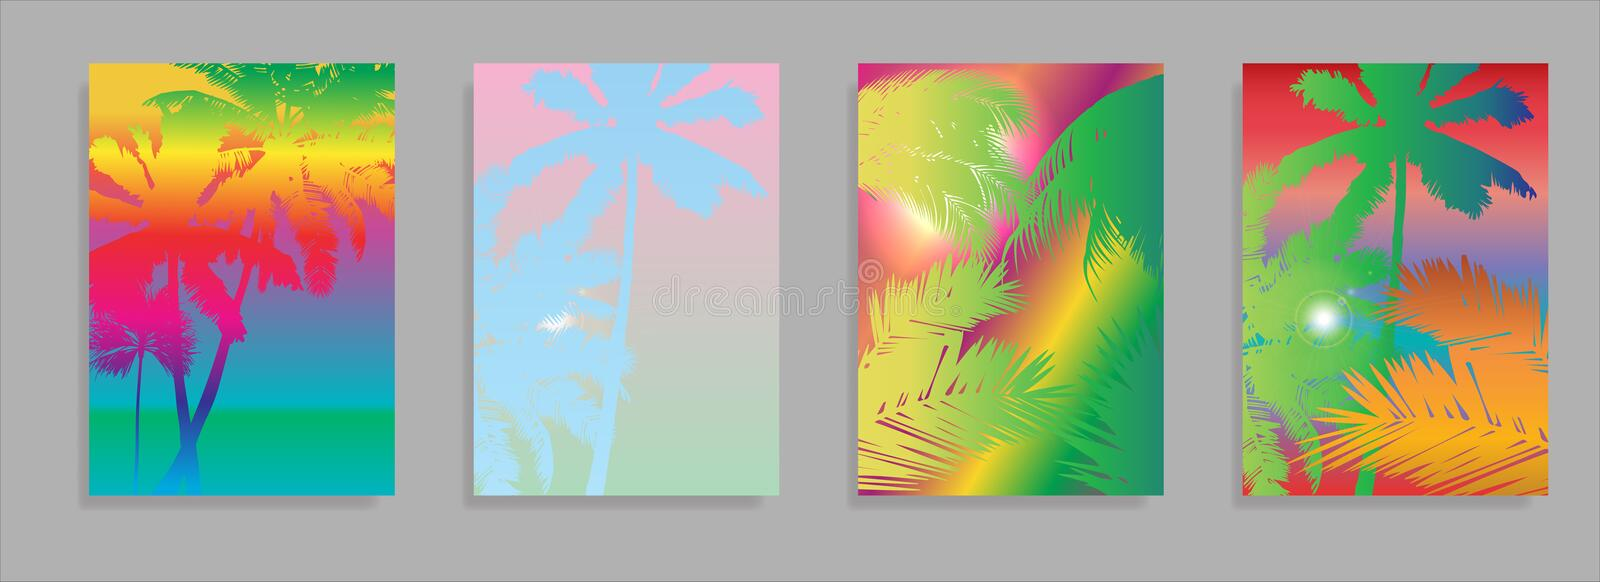 Colorful Summer banners, tropical backgrounds set with palms, leaves, sea, clouds, sky, beach colors. Beautiful Summer stock illustration